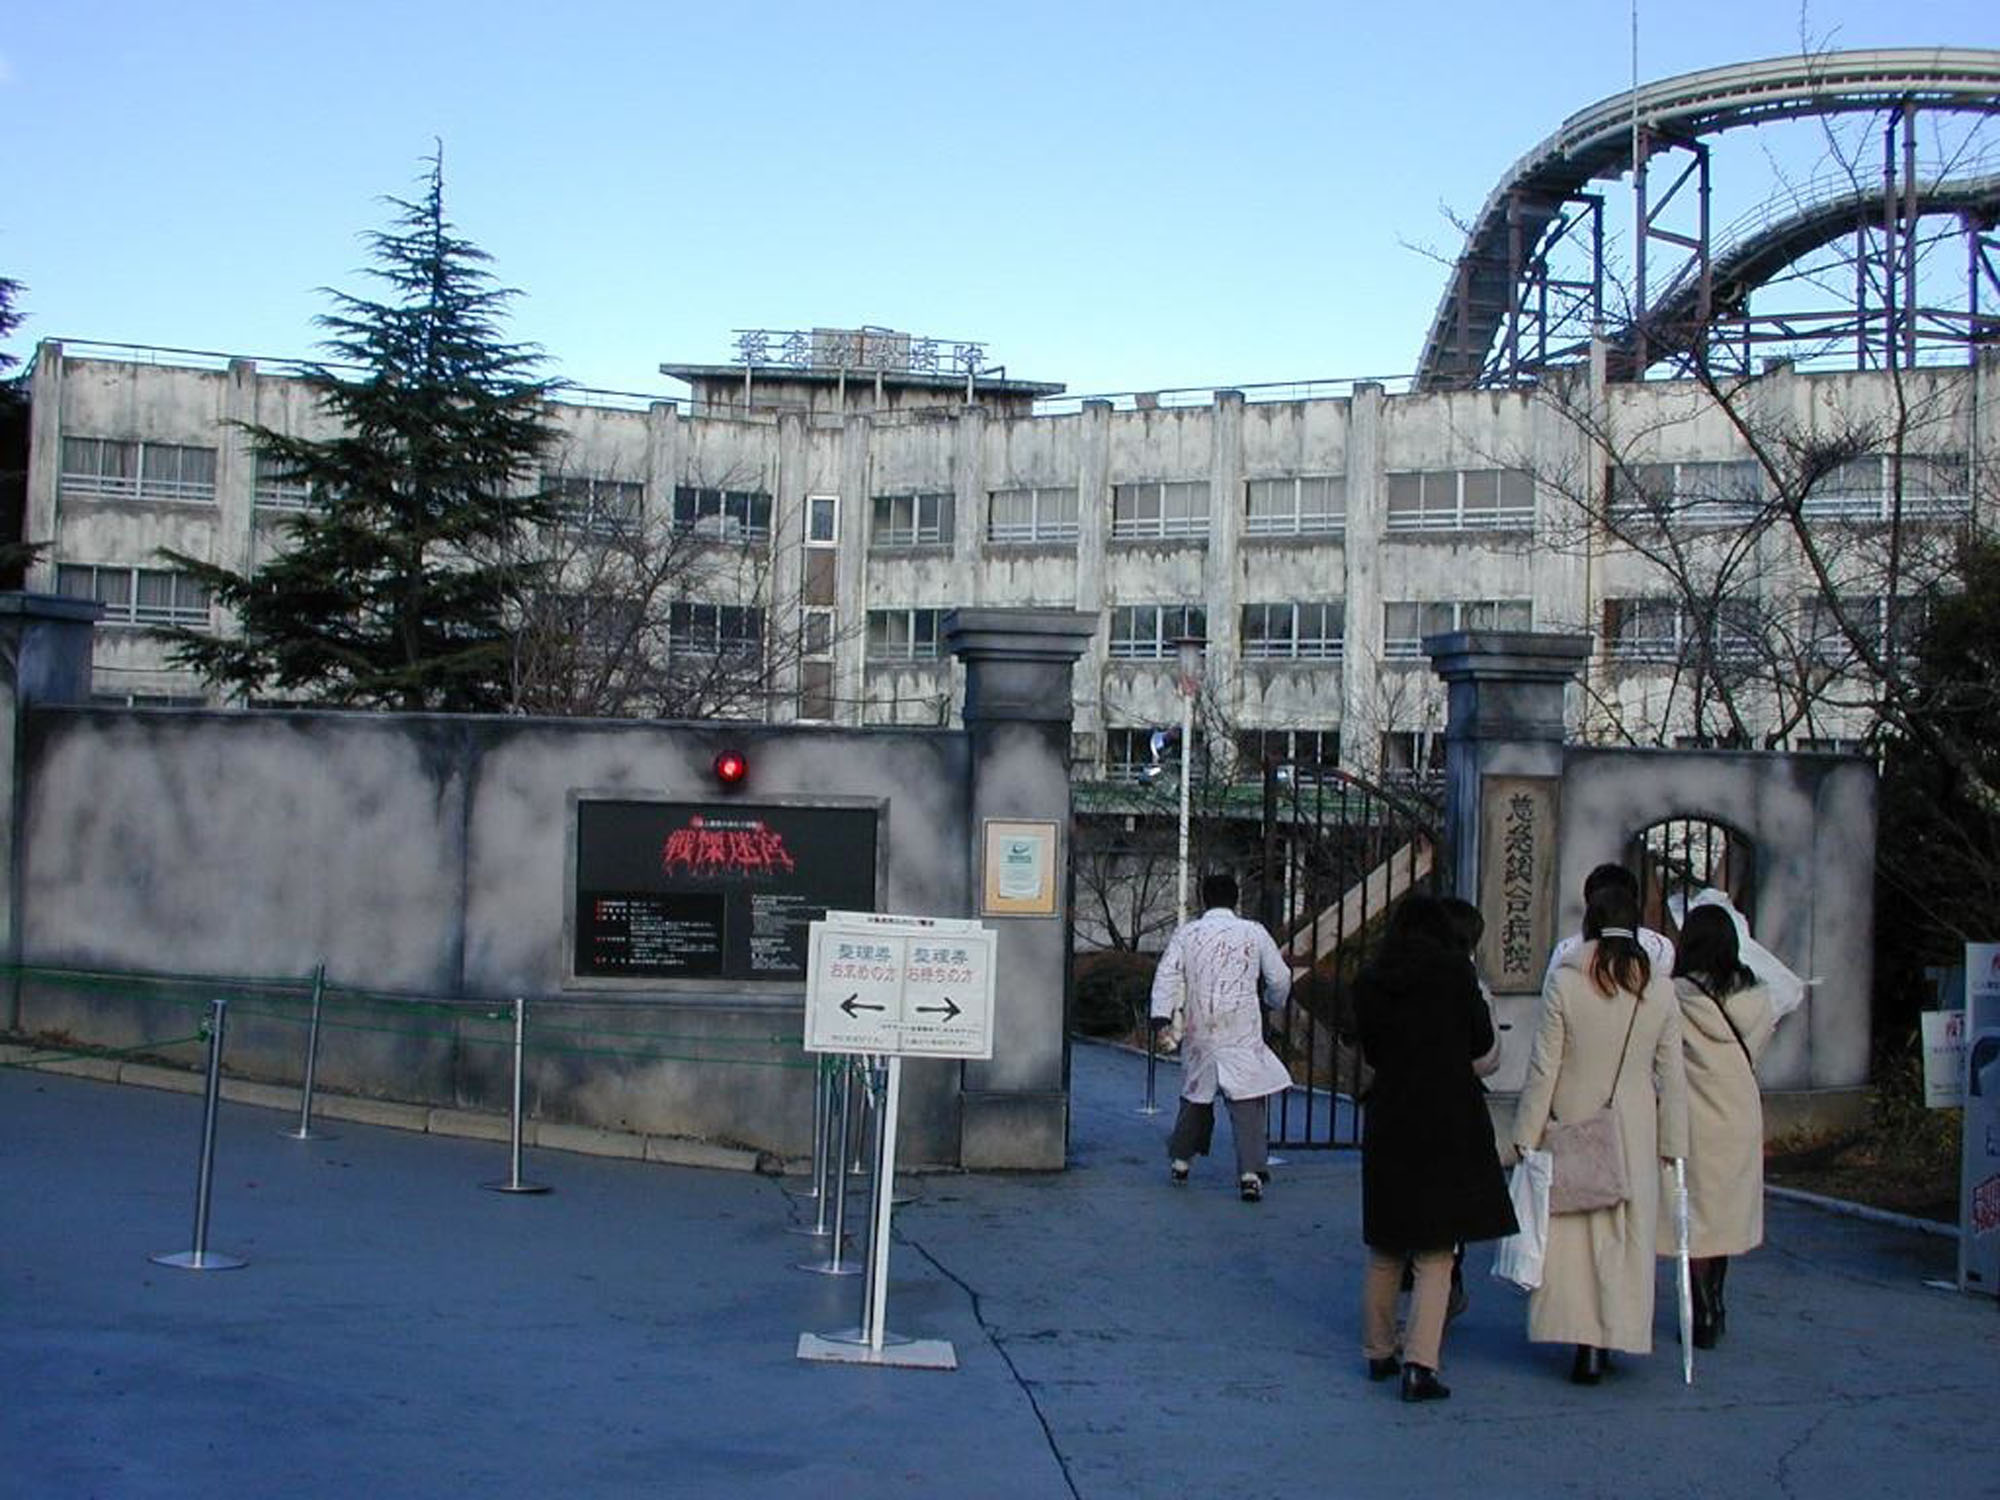 Night of the living dead: Visitors enter Fuji-Q Highland's much-vaunted 'Hospital of Horrors' in the city of Fujiyoshida, about an hour's drive from Tokyo. While inside the attraction, visitors transit a 'detention ward' that once housed criminally dangerous patients. | VIA WIKICOMMONS / CC BY-SA 3.0